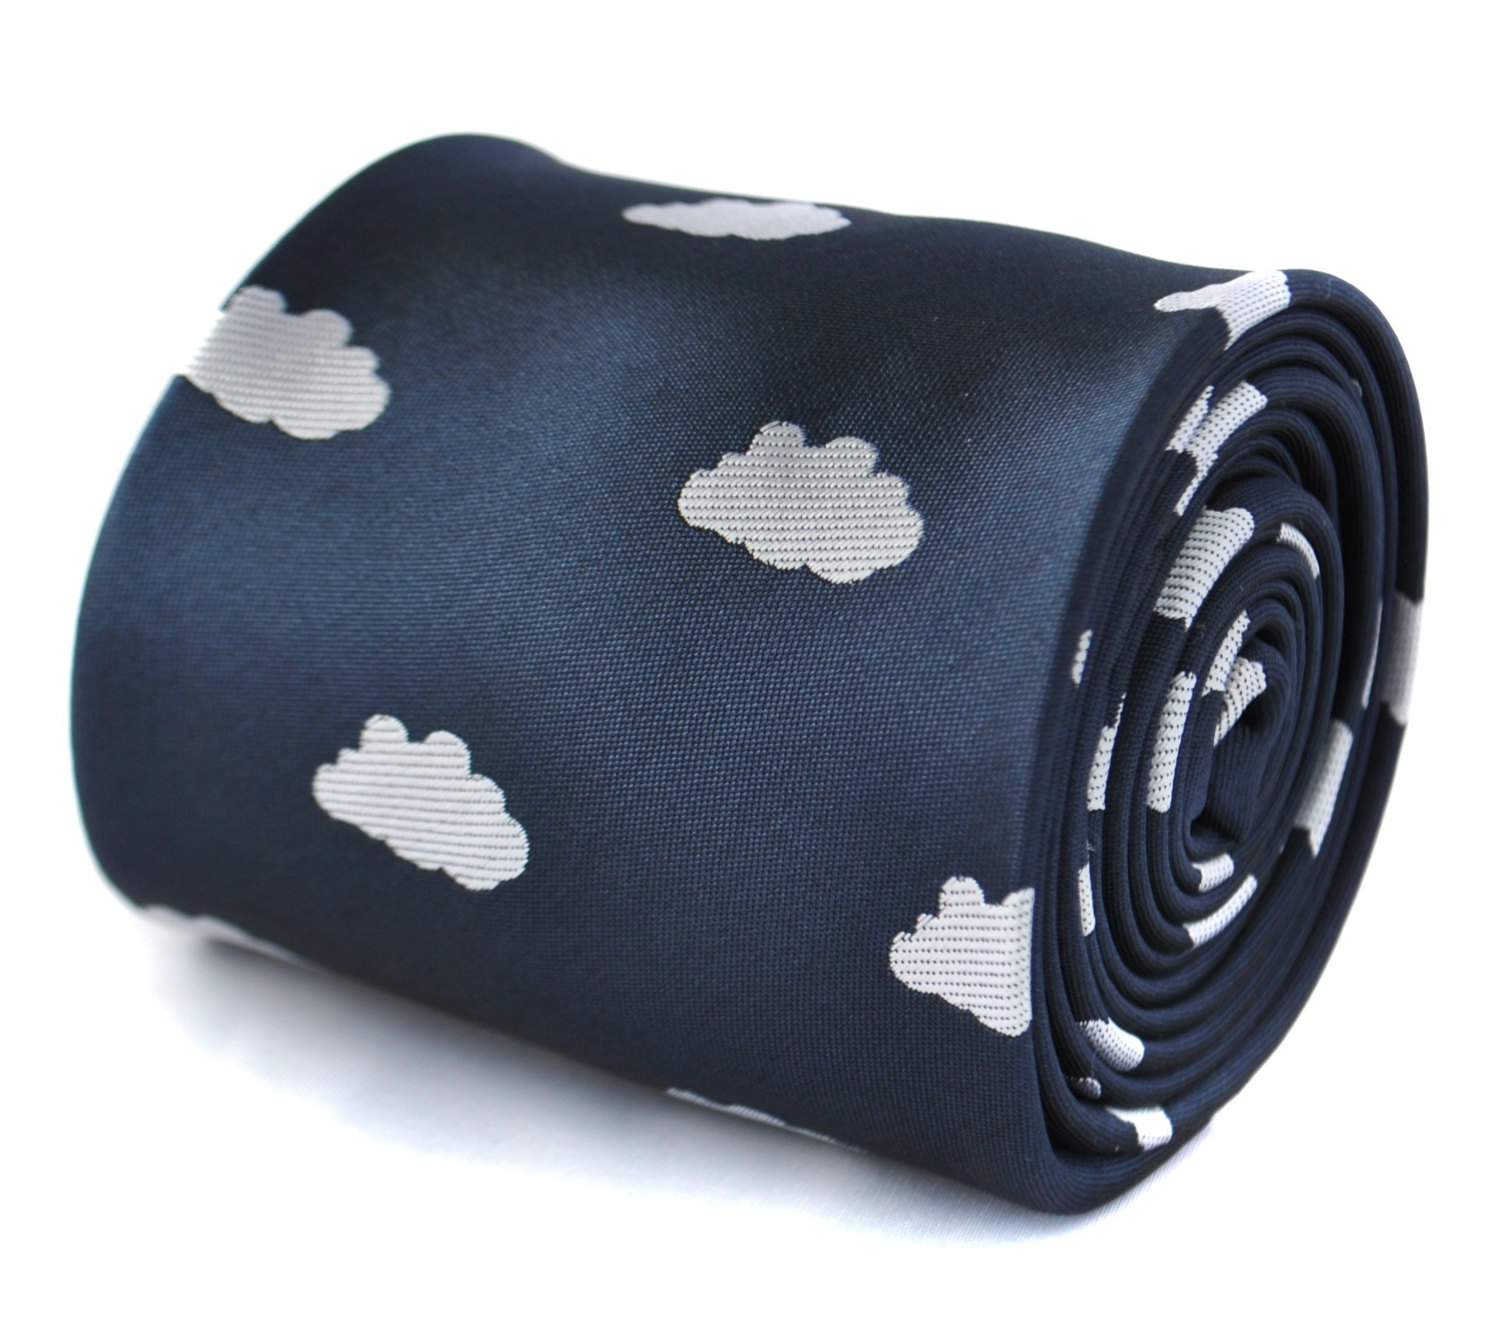 navy blue and white fluffy cloud embroidered design tie with signature floral de